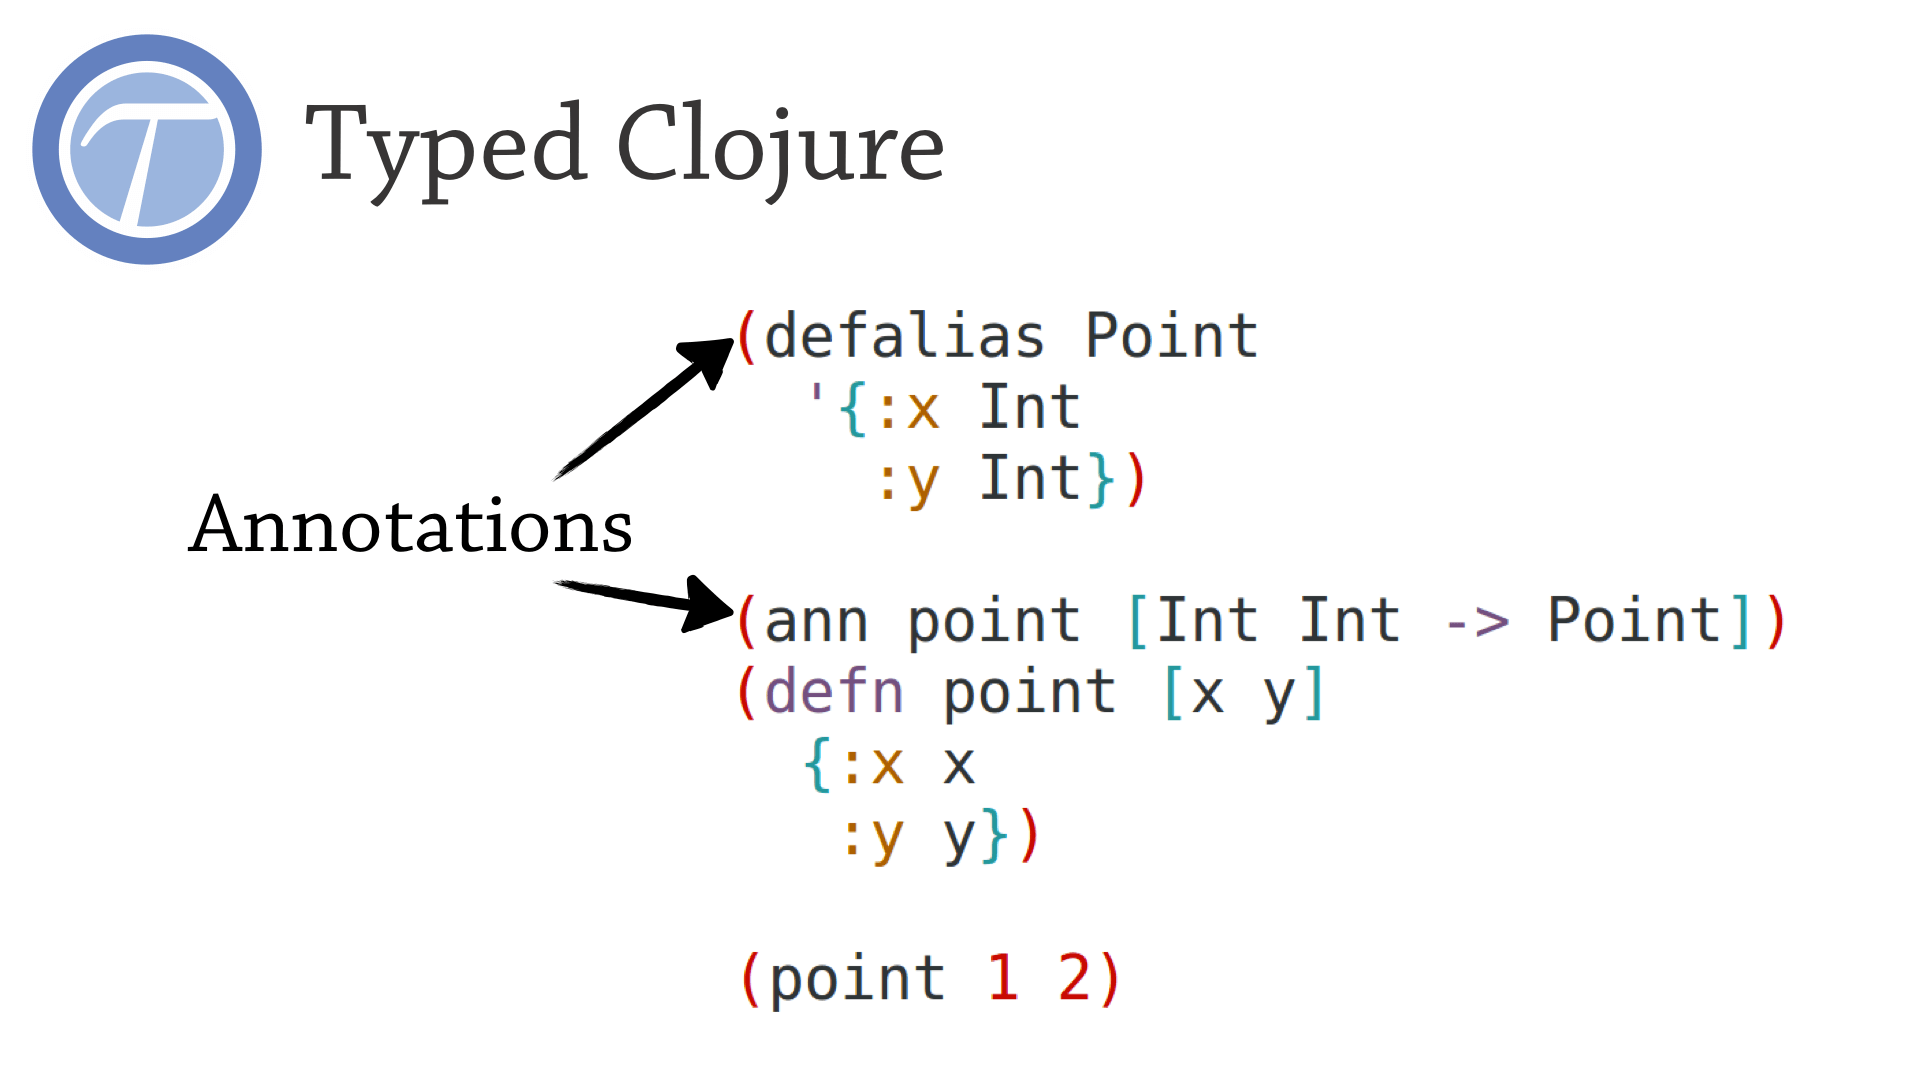 Defining a point in Typed Clojure